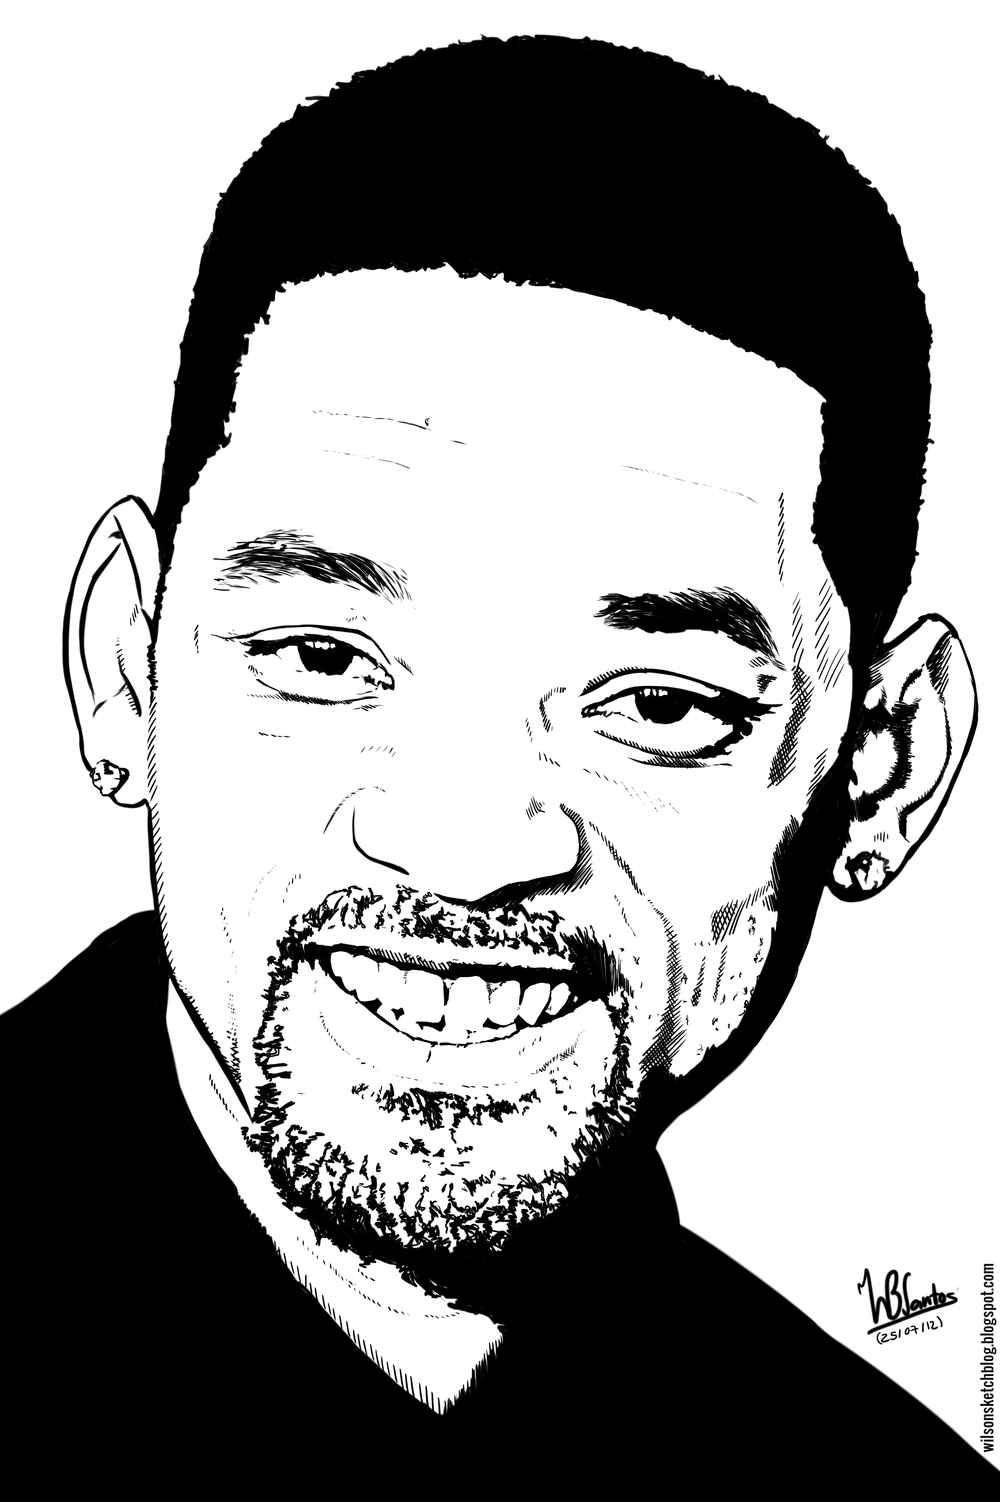 Drawn caricature will smith #14